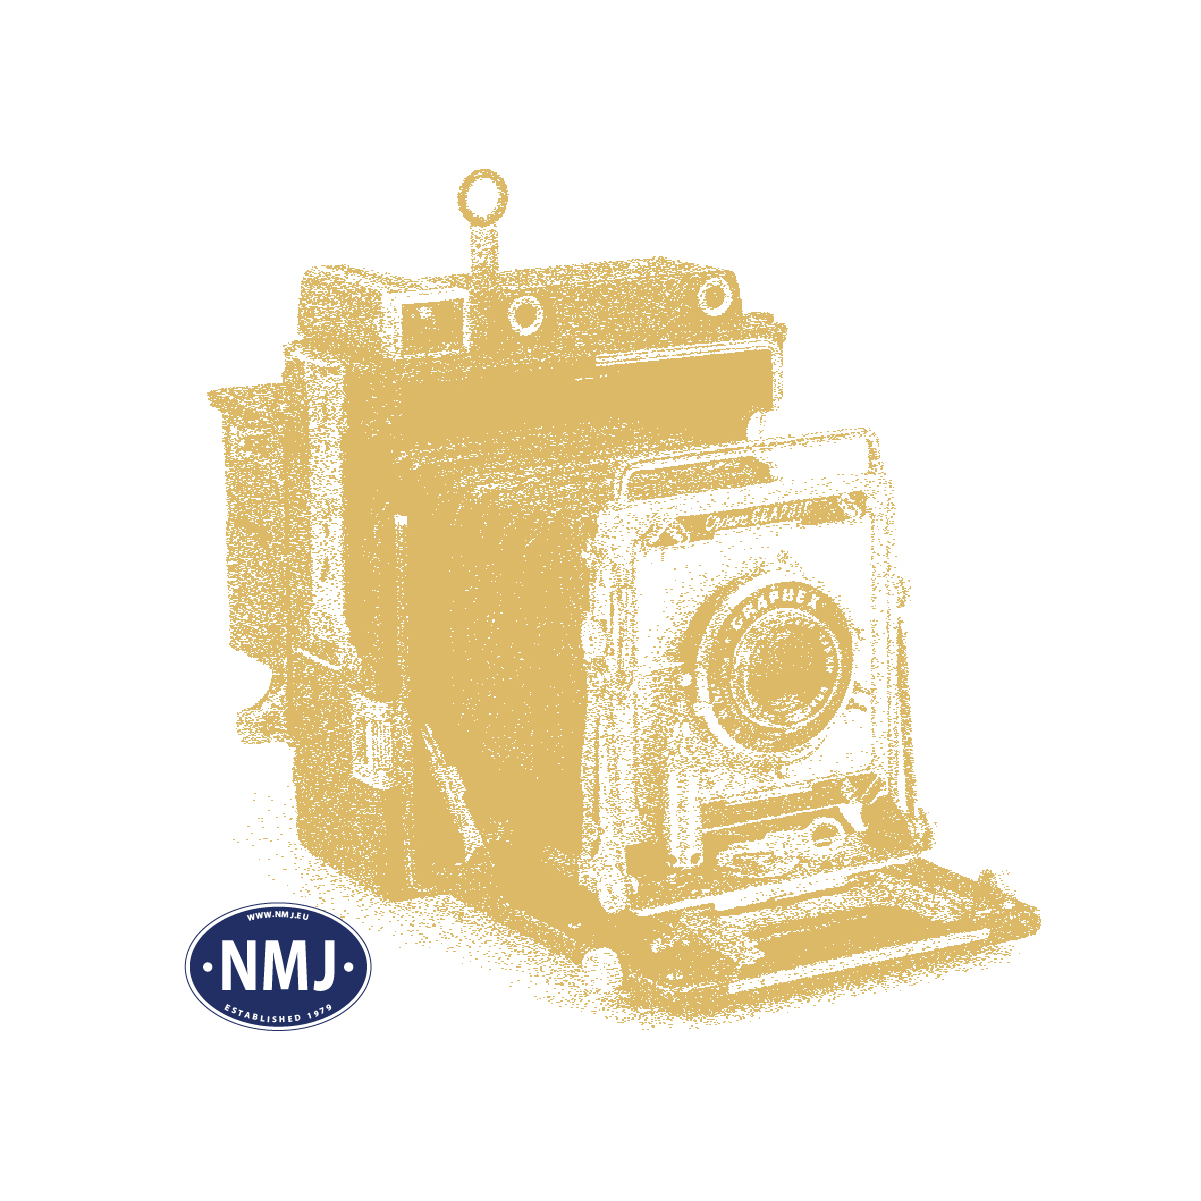 NMJ Exclusive, nmj-exclusive-nmje89903-nmj-h0-display-case-36-cm-with-catenary-masts, NMJE89903